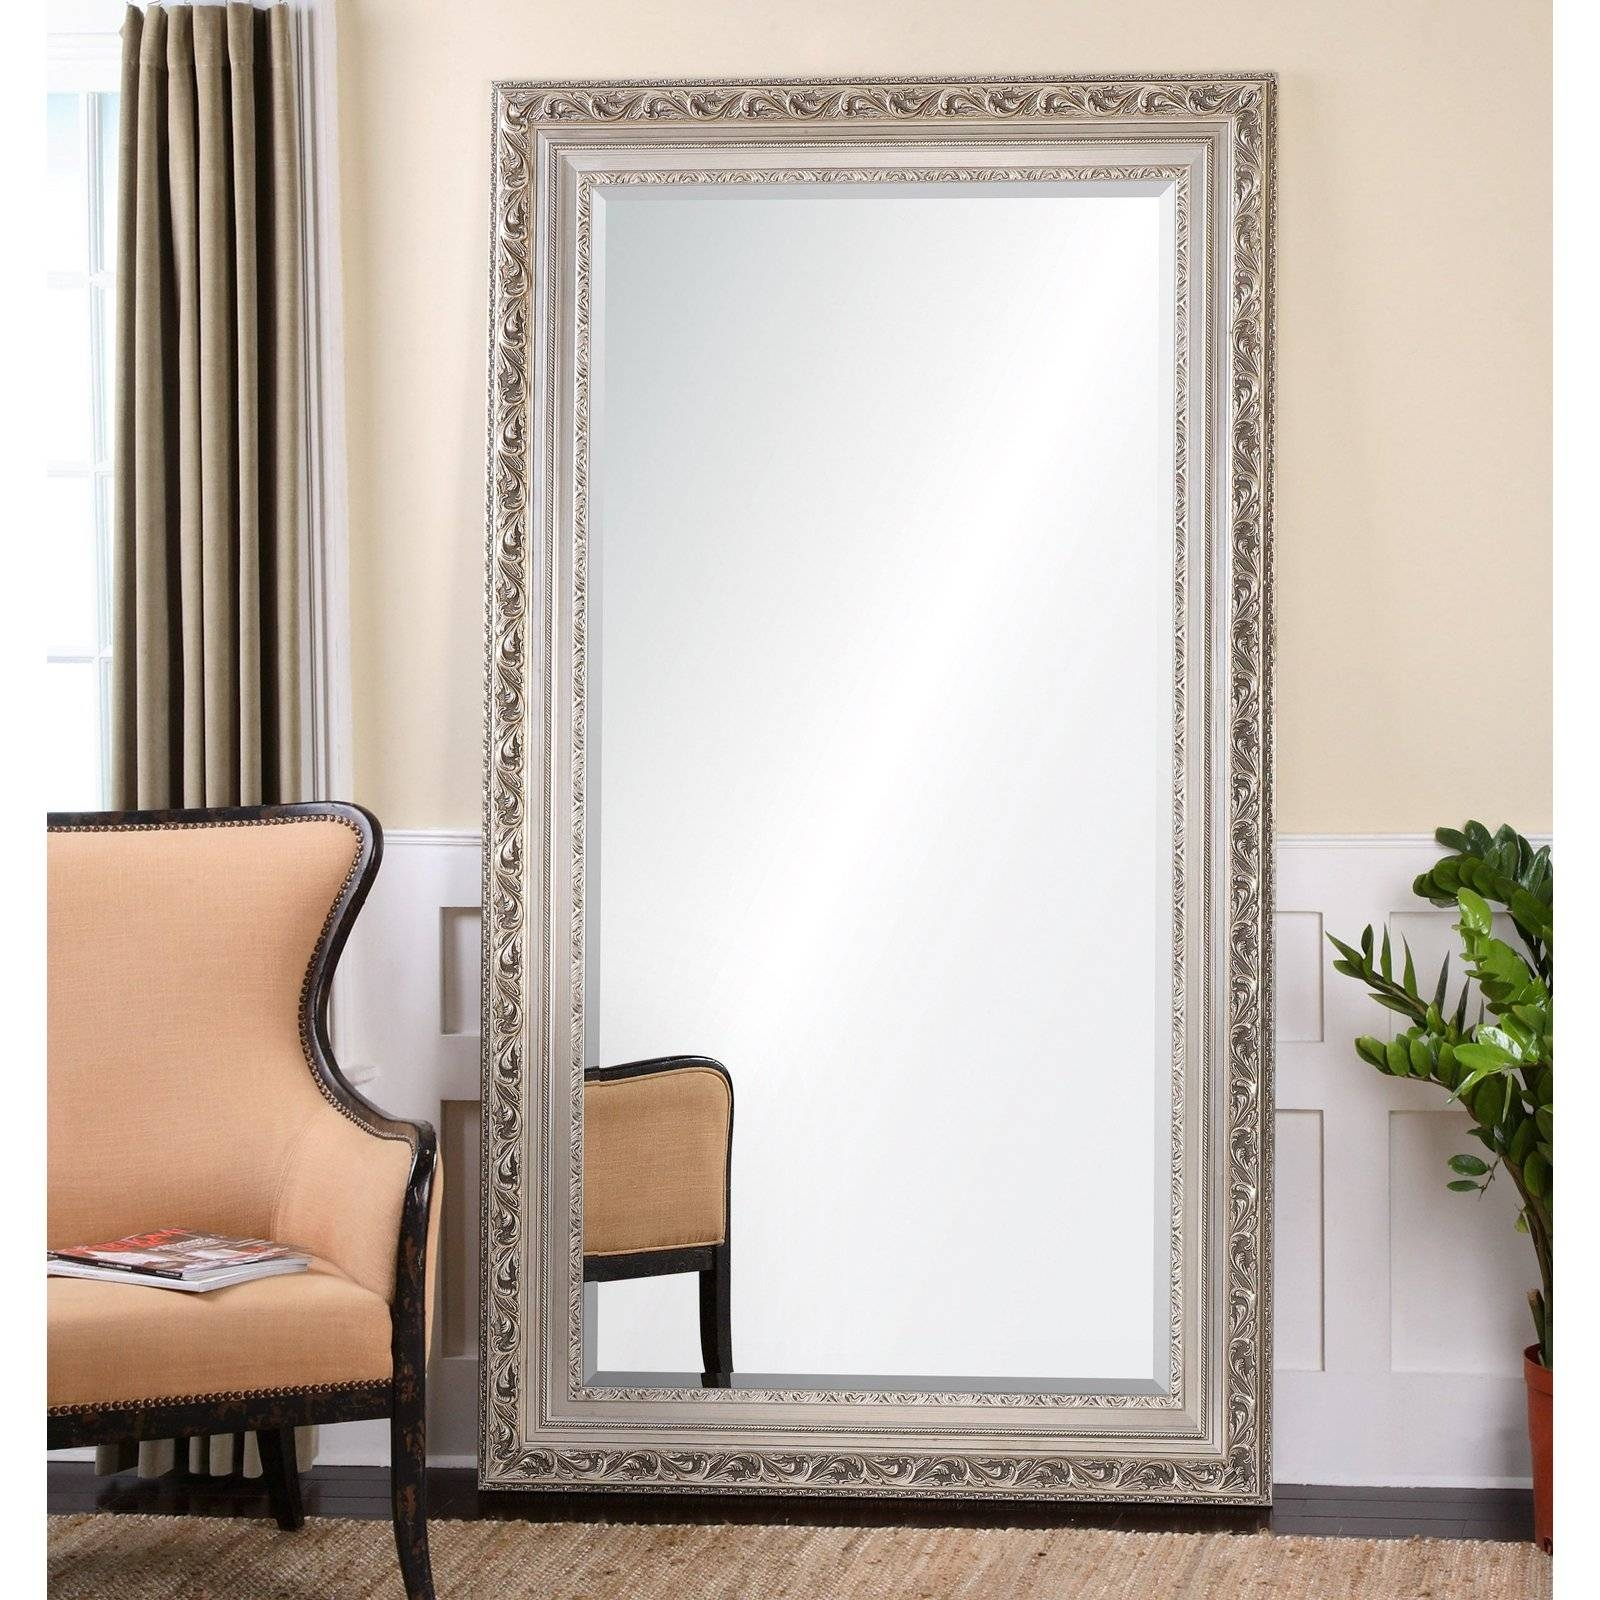 Furniture: Mesmerizing Oversized Floor Mirror For Home Furniture with regard to Cheap Huge Mirrors (Image 4 of 15)